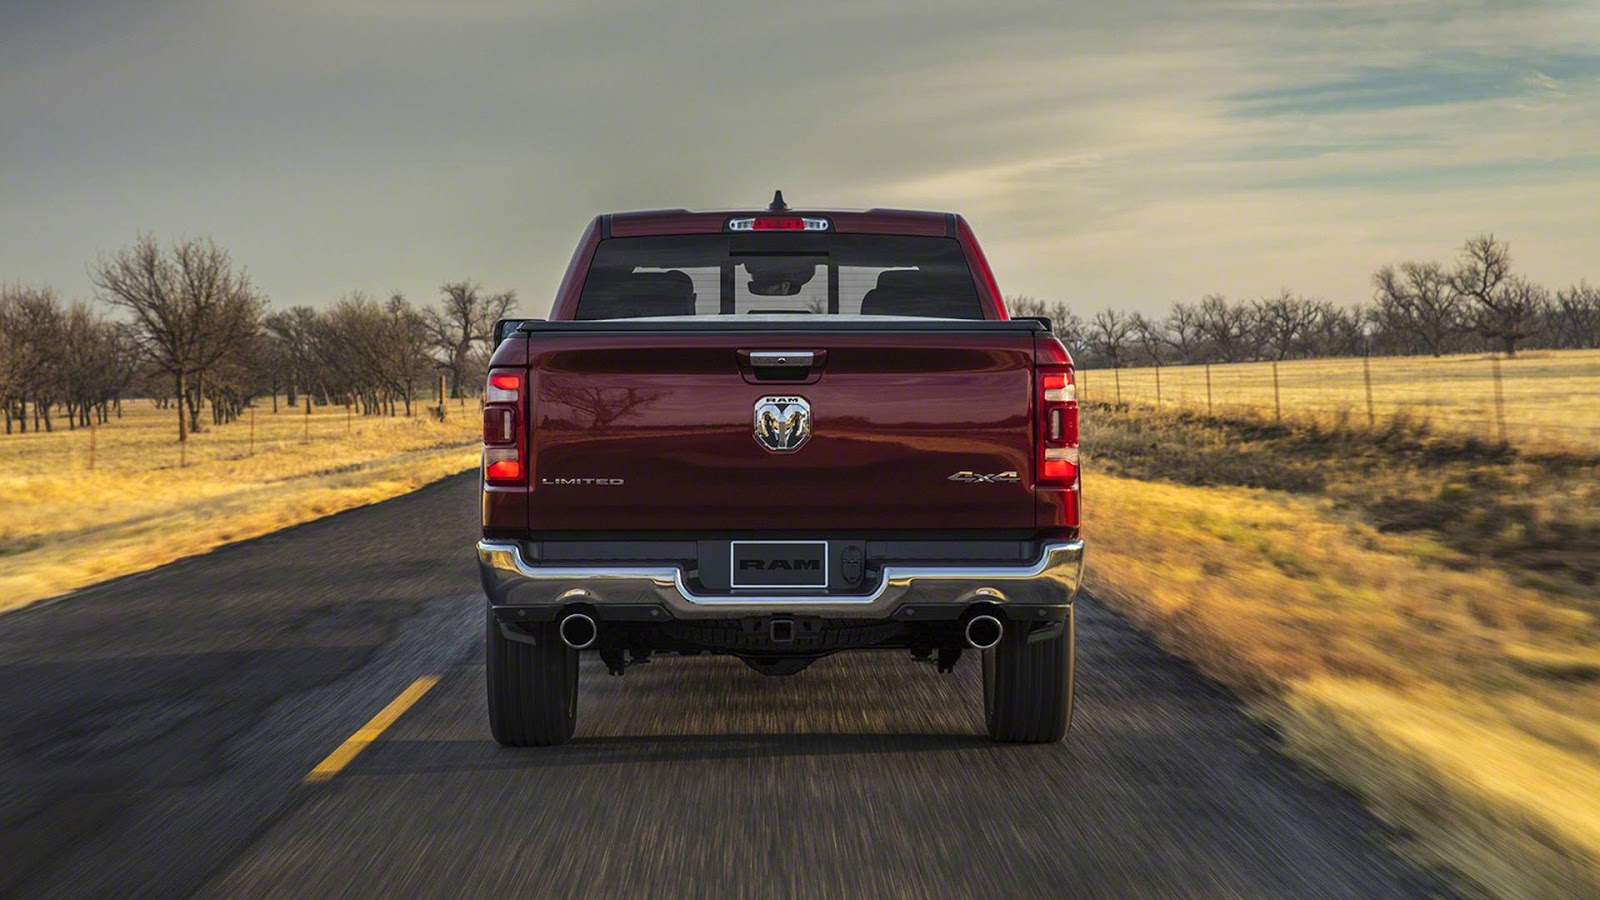 2019 Ram 1500 Easter Egg Is An Indicator For The 707-HP ...